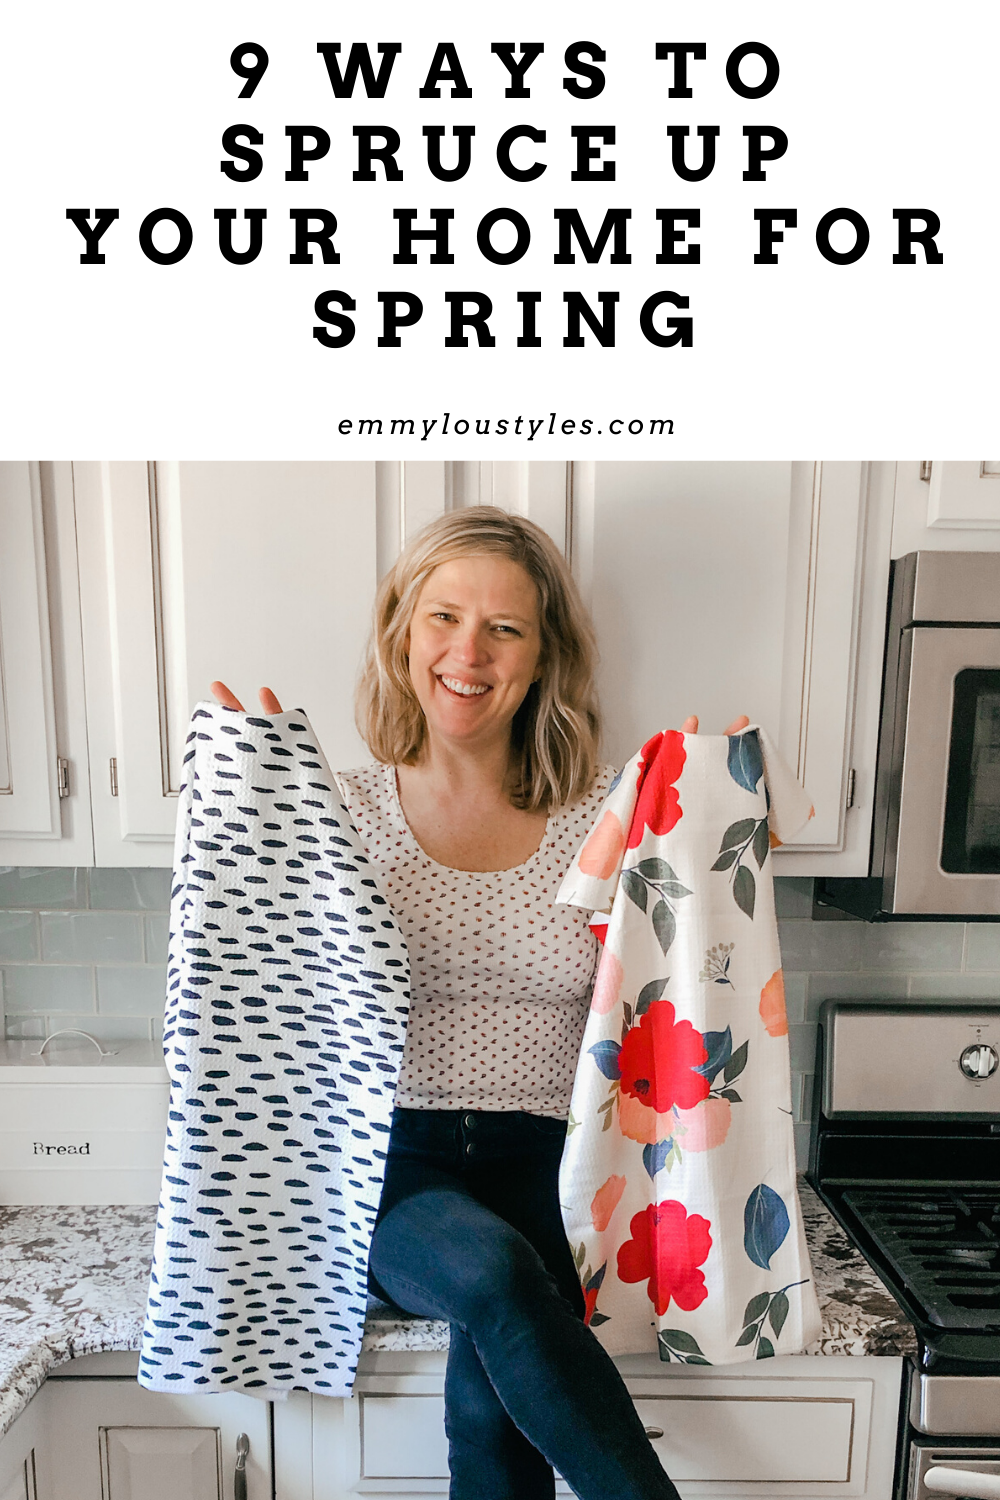 If you're spending a lot of time at home this spring, why not update some of your home decor?  This post covers spring home decor updates for everything from kitchen towels to wreaths for the door.  Check out these 9 ways to update your space for spring now!  #homedecor #homedecorblog #springdecor